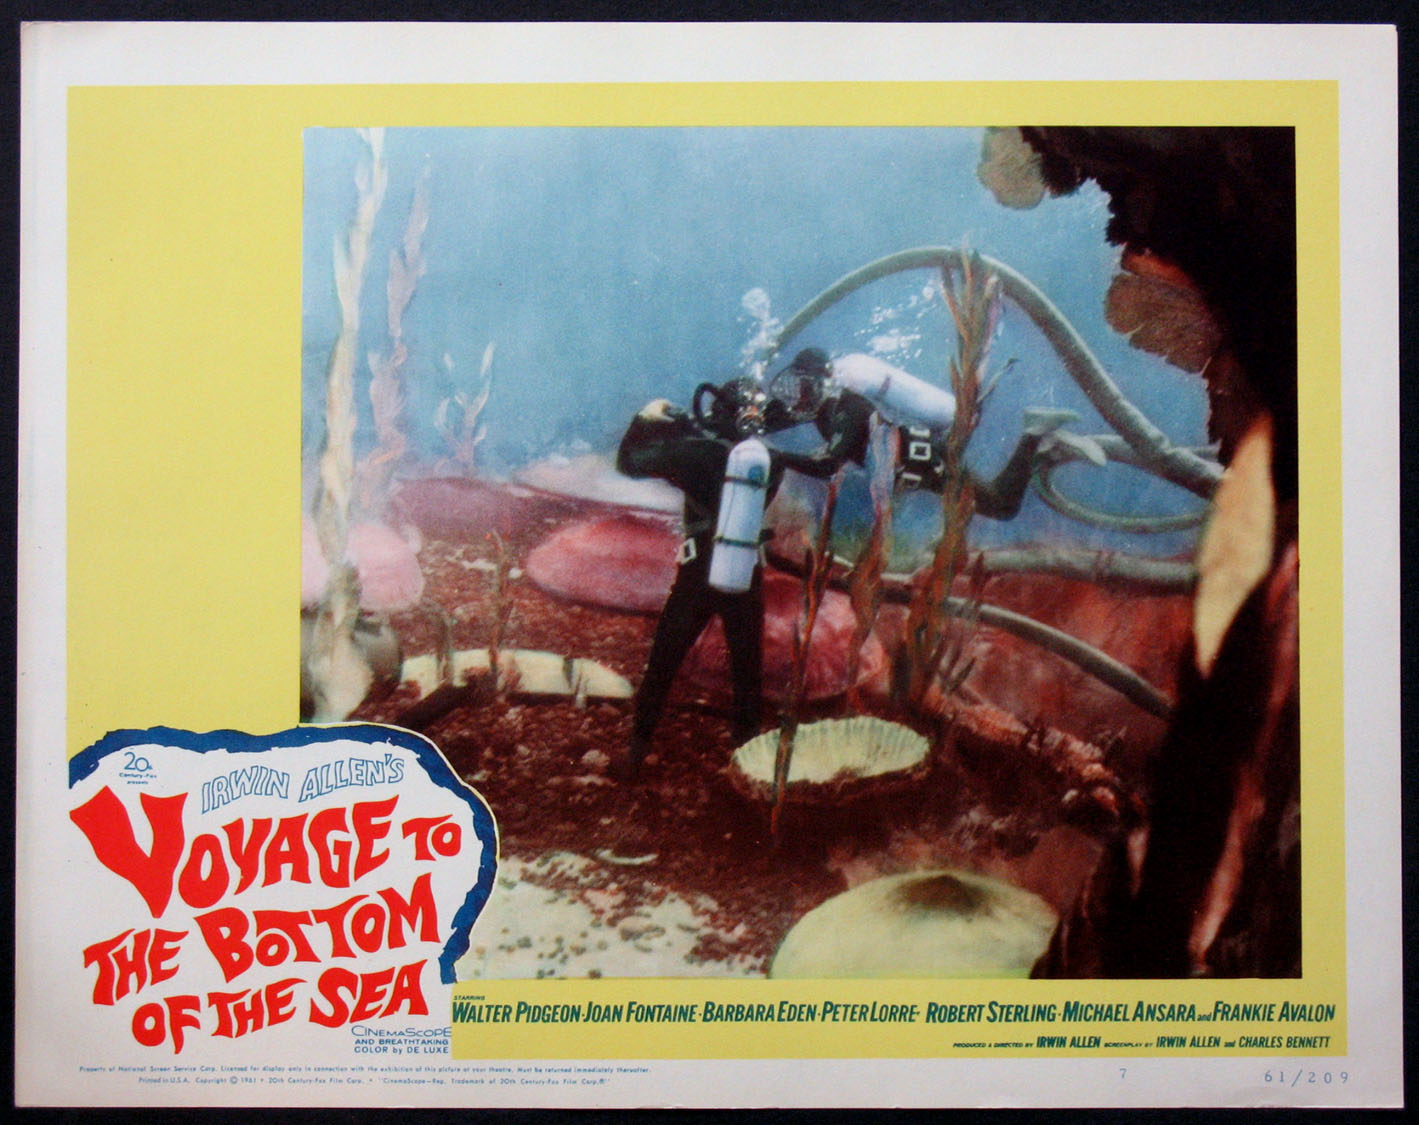 VOYAGE TO THE BOTTOM OF THE SEA @ FilmPosters.com